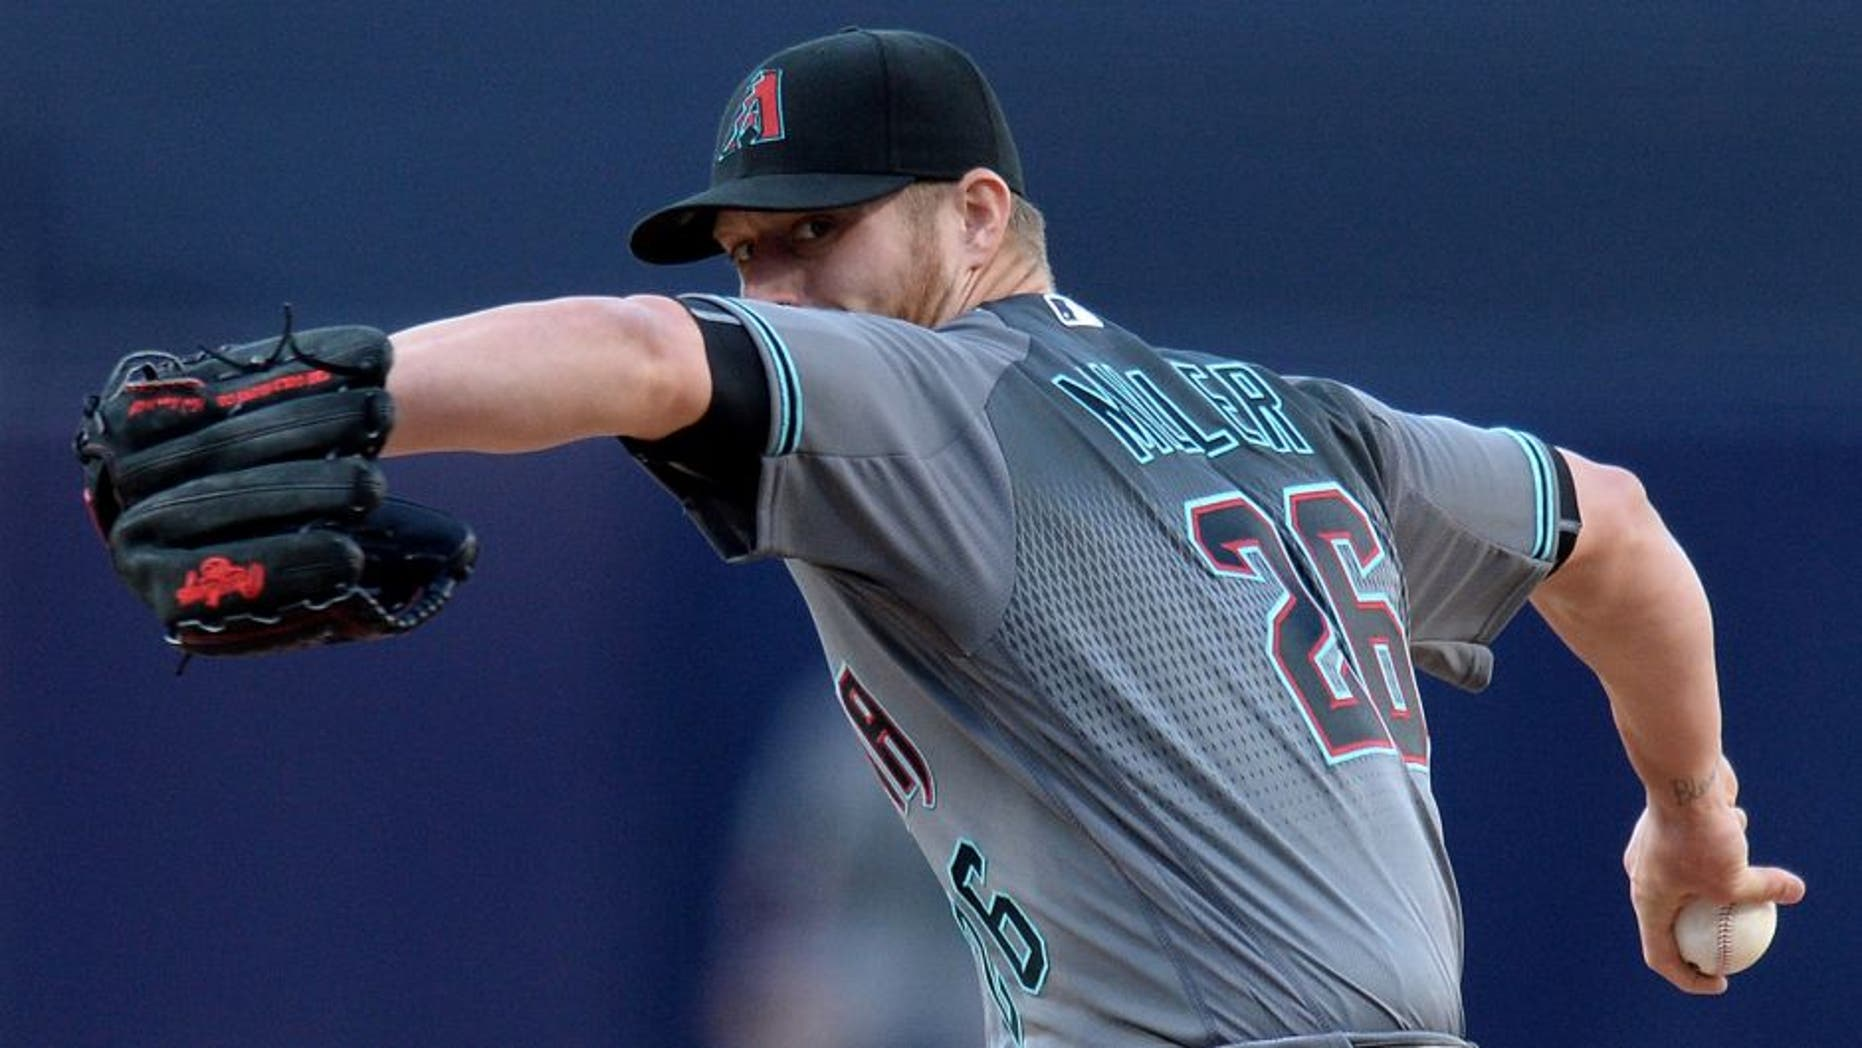 Apr 16, 2016; San Diego, CA, USA; Arizona Diamondbacks starting pitcher Shelby Miller (26) throws the ball during the first inning against the San Diego Padres at Petco Park. Mandatory Credit: Jake Roth-USA TODAY Sports